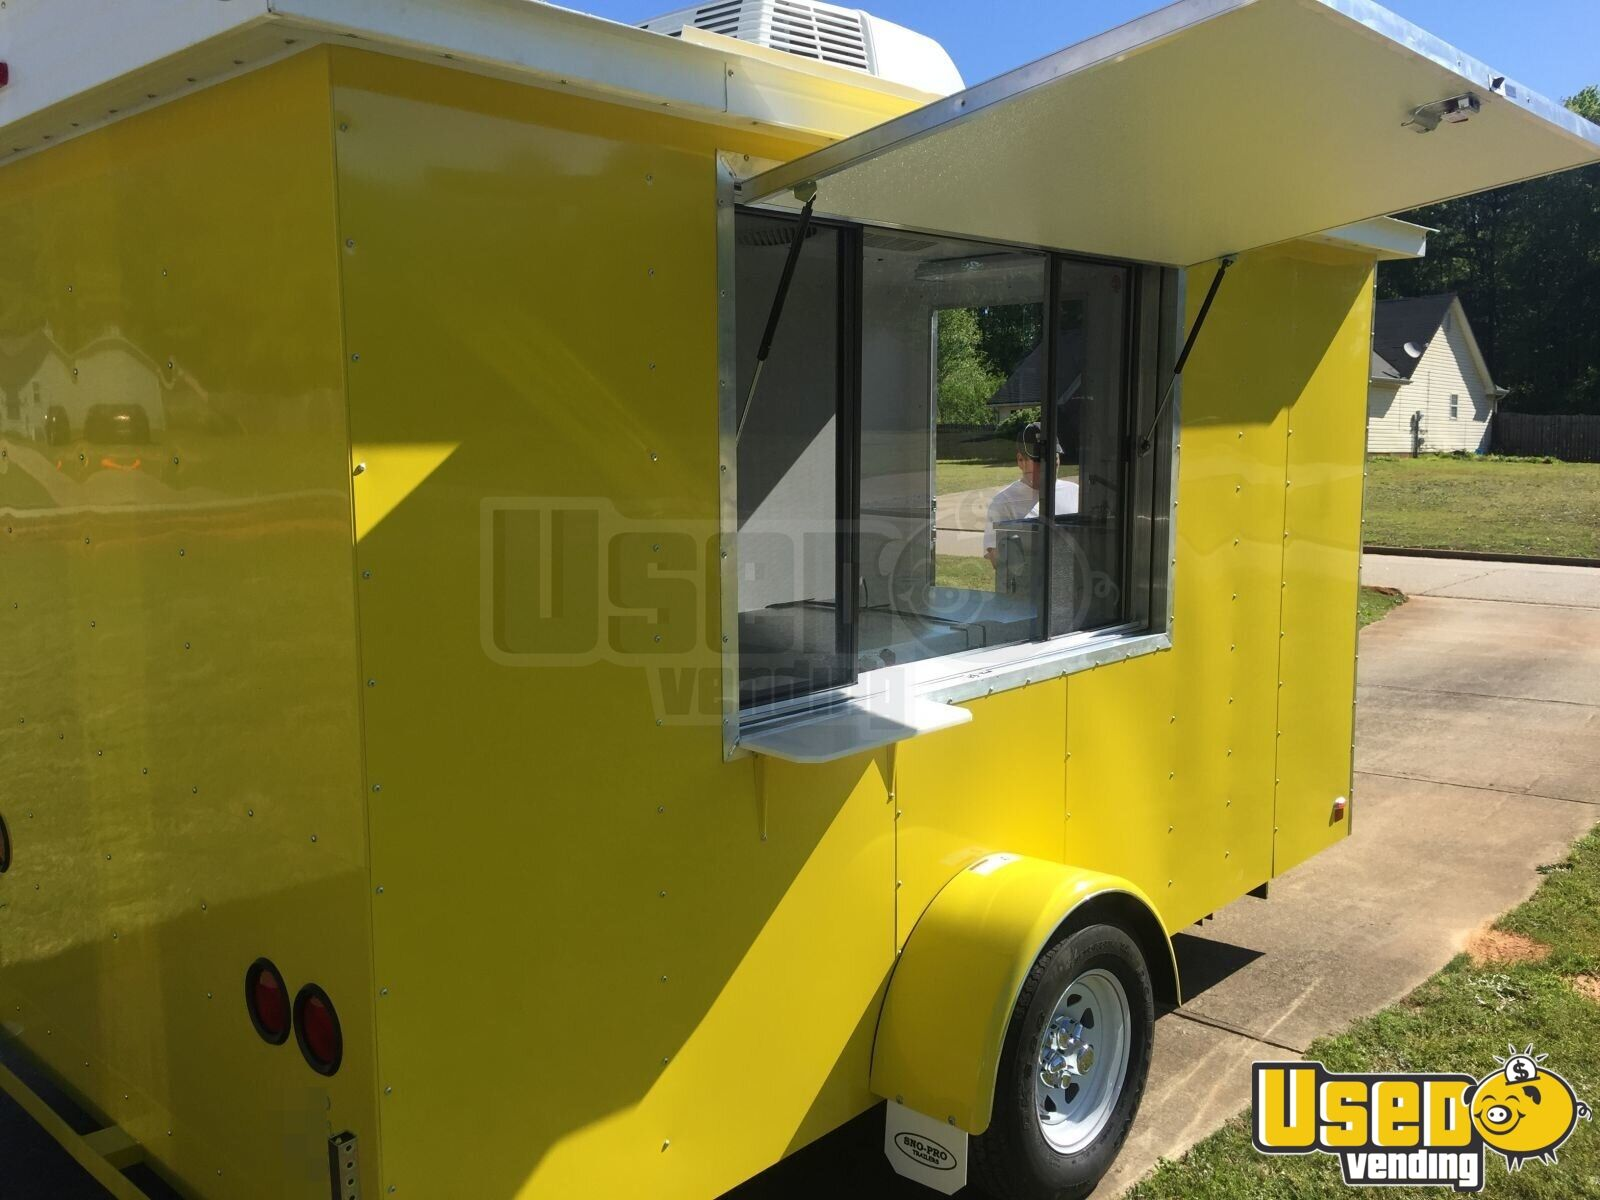 2013 Sno Pro Concession Trailer Hand-washing Sink Texas for Sale - 11